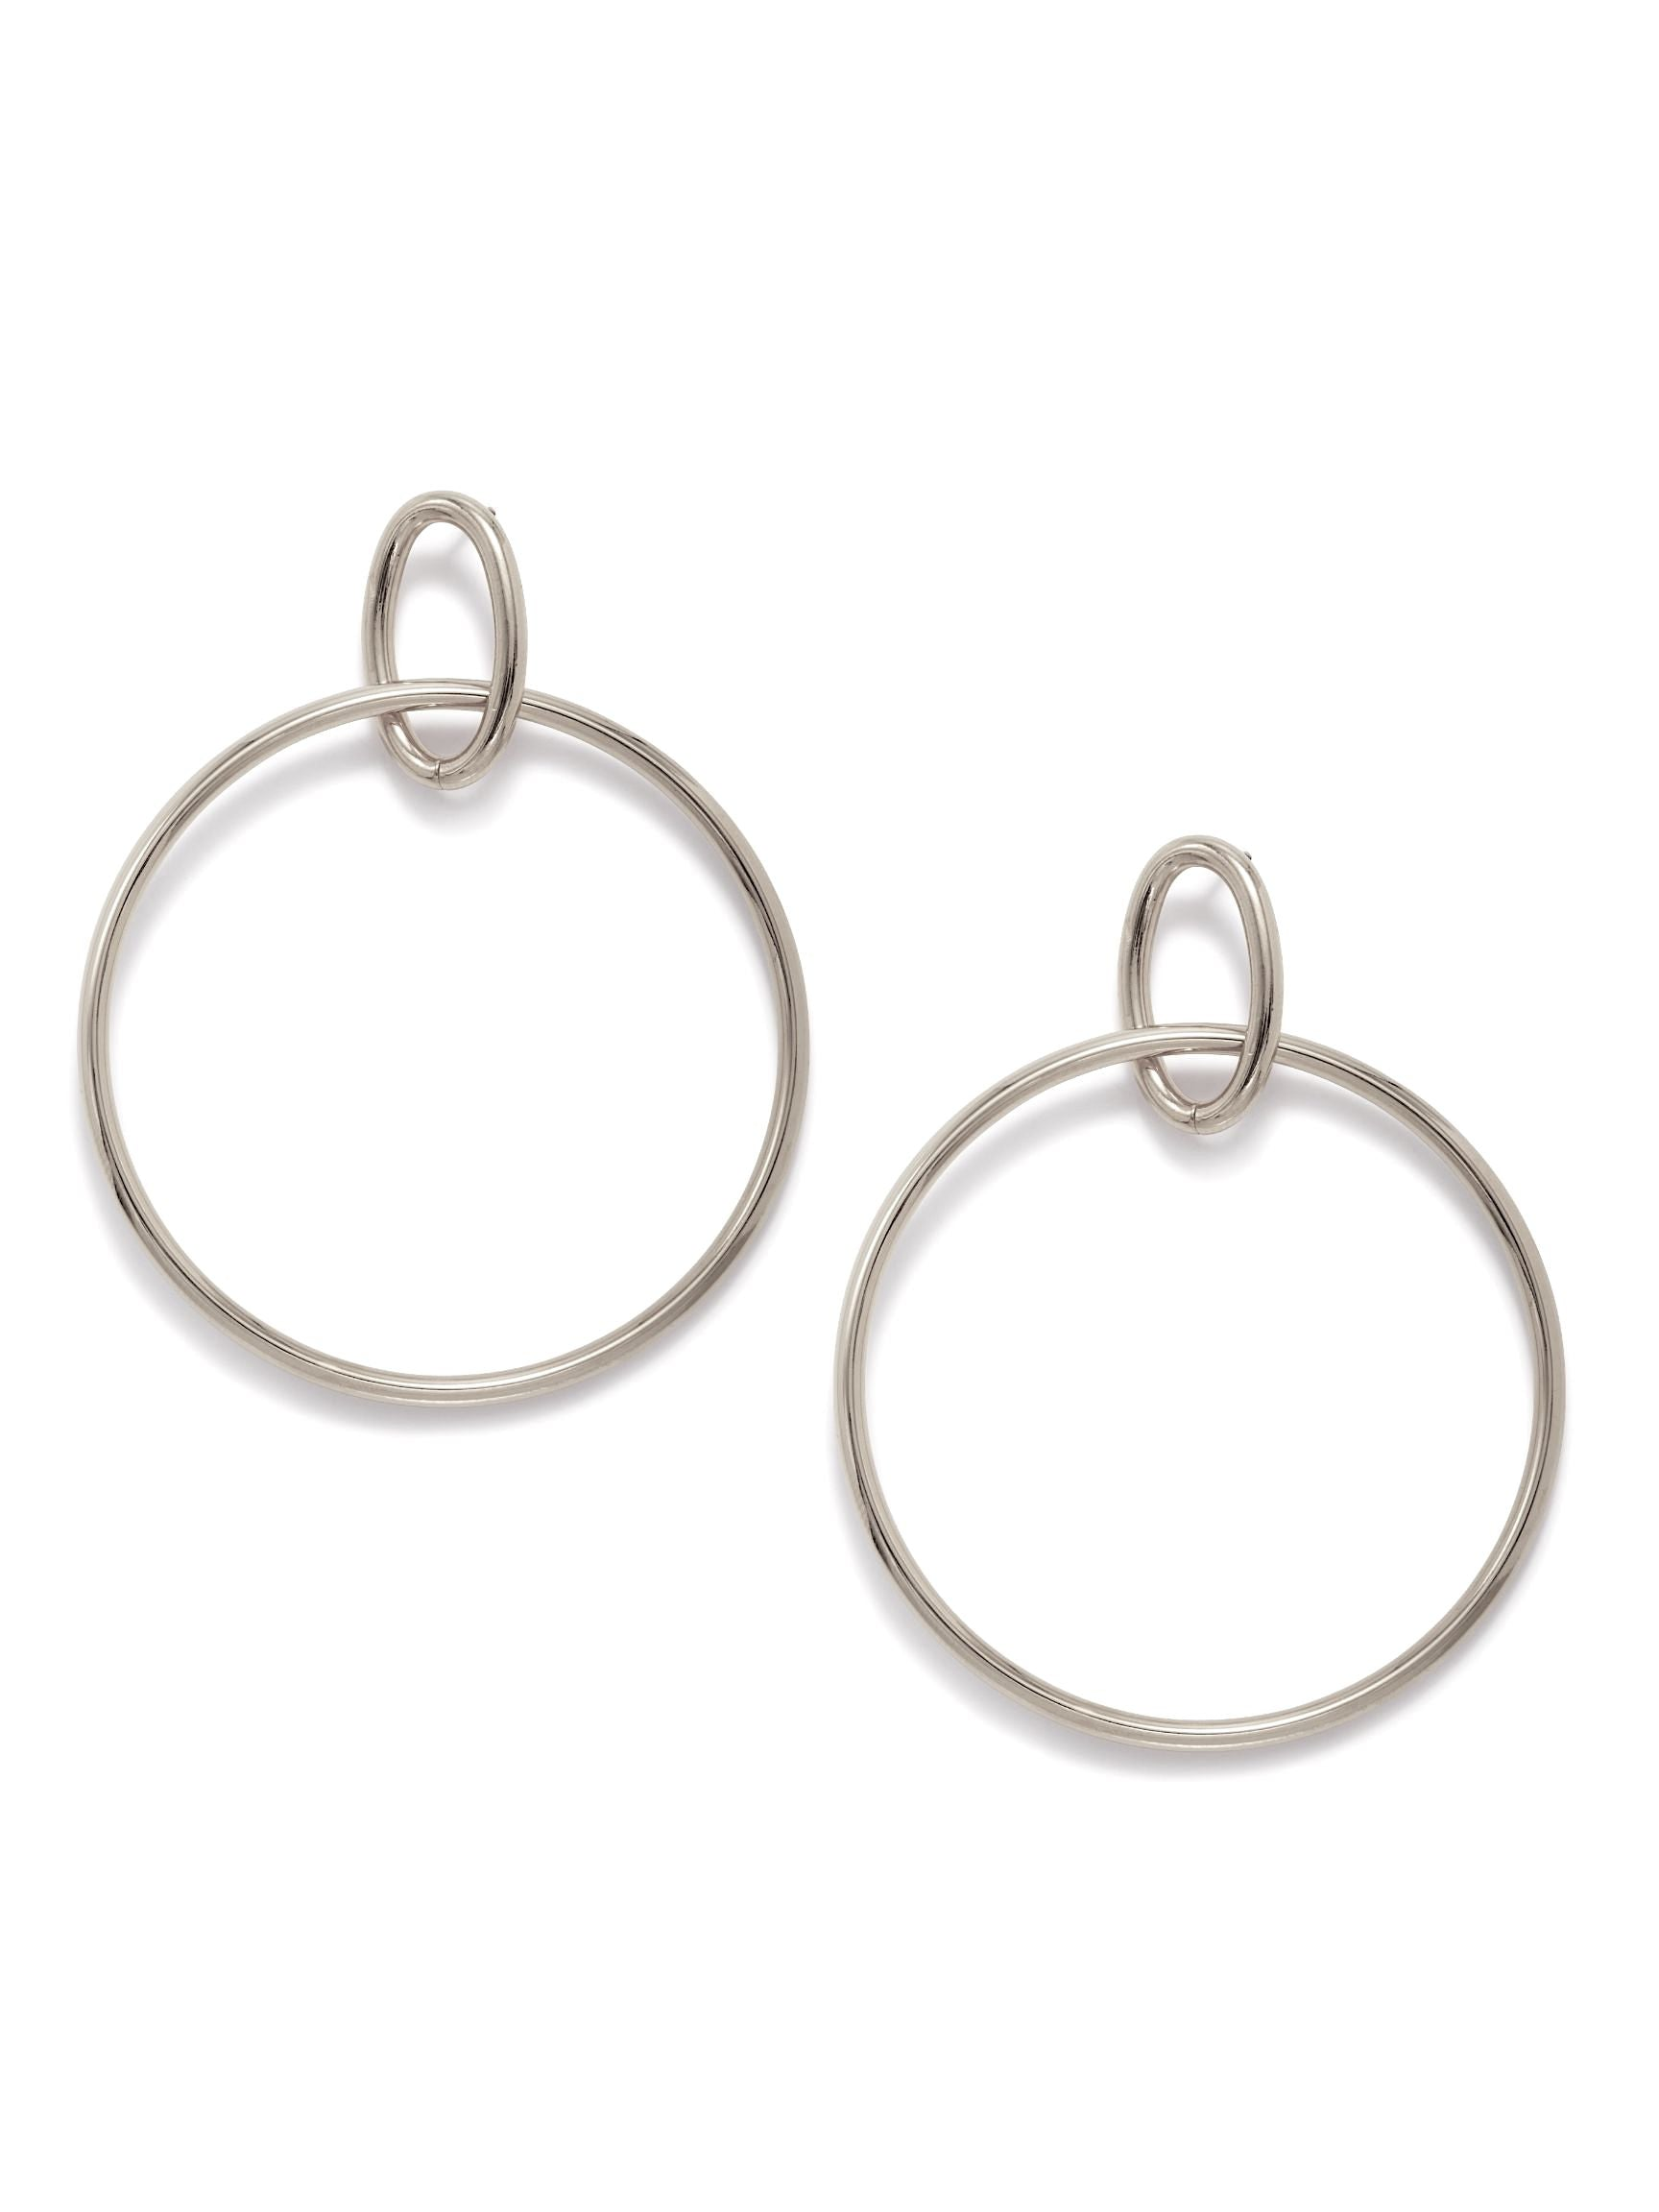 Silver Everly Dangle Hoop Earrings-Earrings-JAREDJAMIN Jewelry Online-JAREDJAMIN - Fashion Jewelry & Accessories